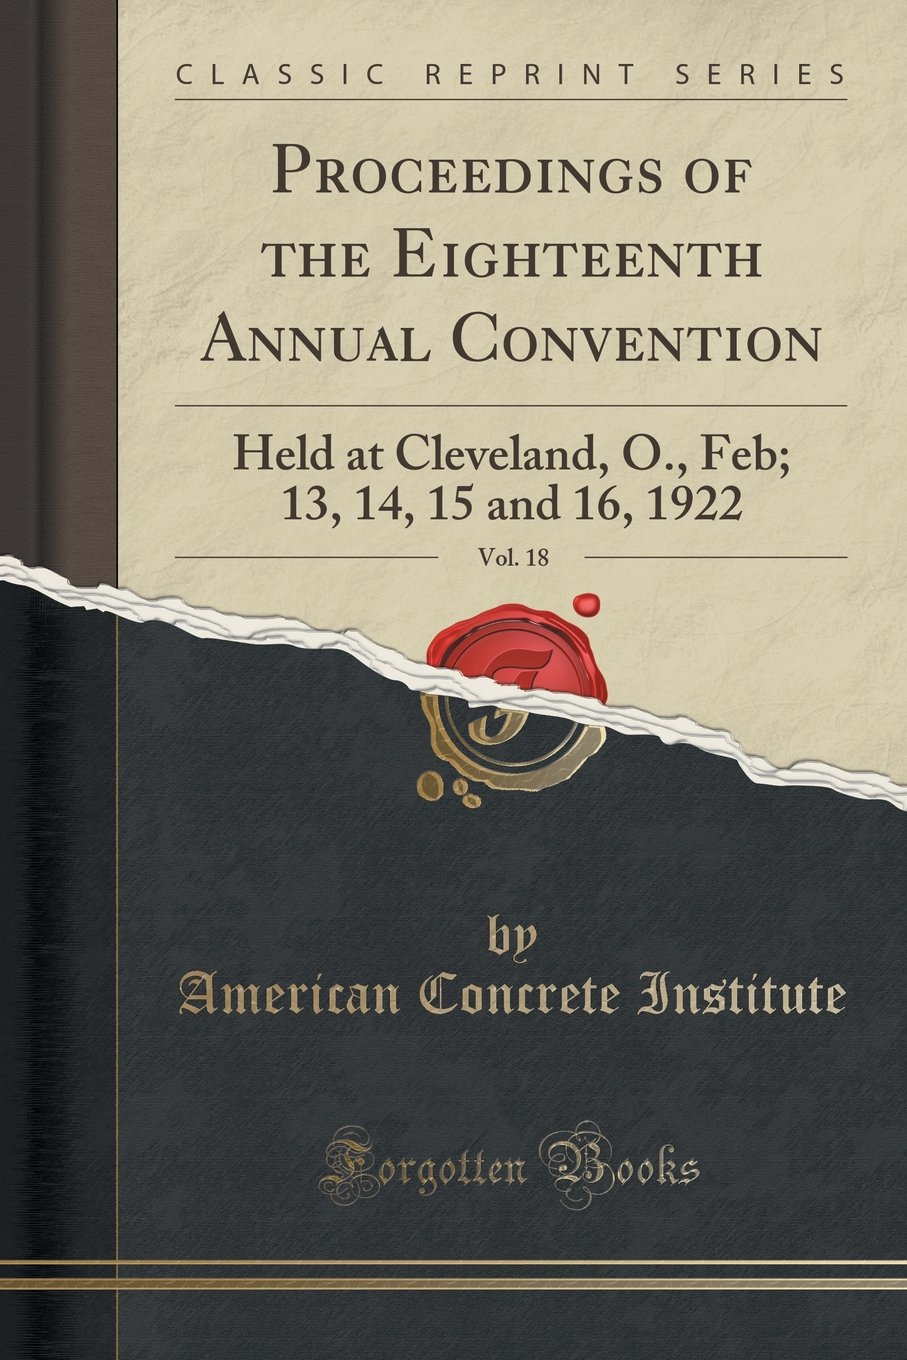 Download Proceedings of the Eighteenth Annual Convention, Vol. 18: Held at Cleveland, O., Feb; 13, 14, 15 and 16, 1922 (Classic Reprint) ebook